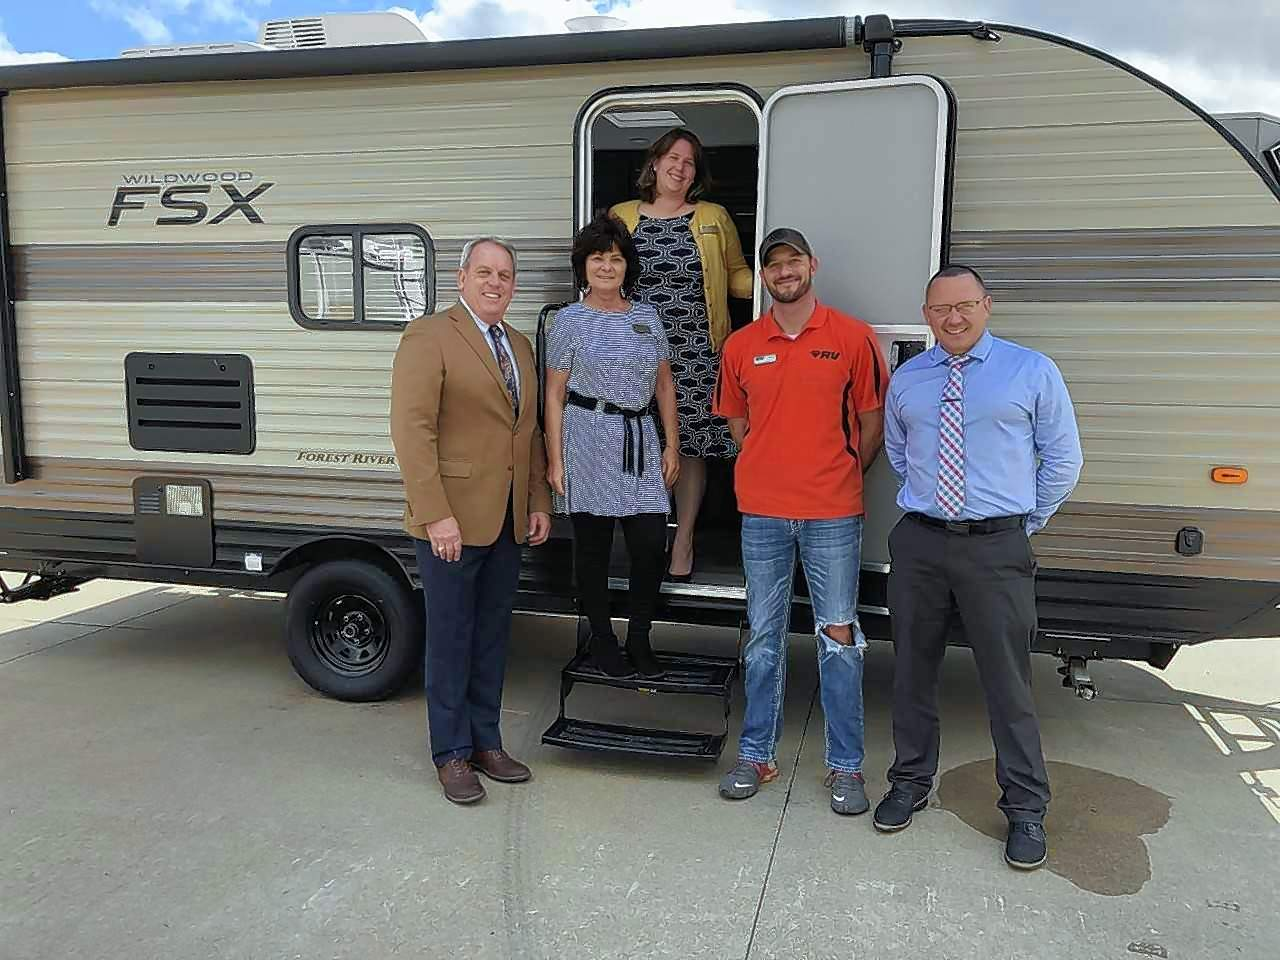 From left, Dale Fowler, Gail Barger, Karen Mullins, Jake Rushing, and Jason Powell gather for a photo of the camper donated by Black Diamond RV to be raffled as part of the SI Made Expo to benefit Honor Flight 006.